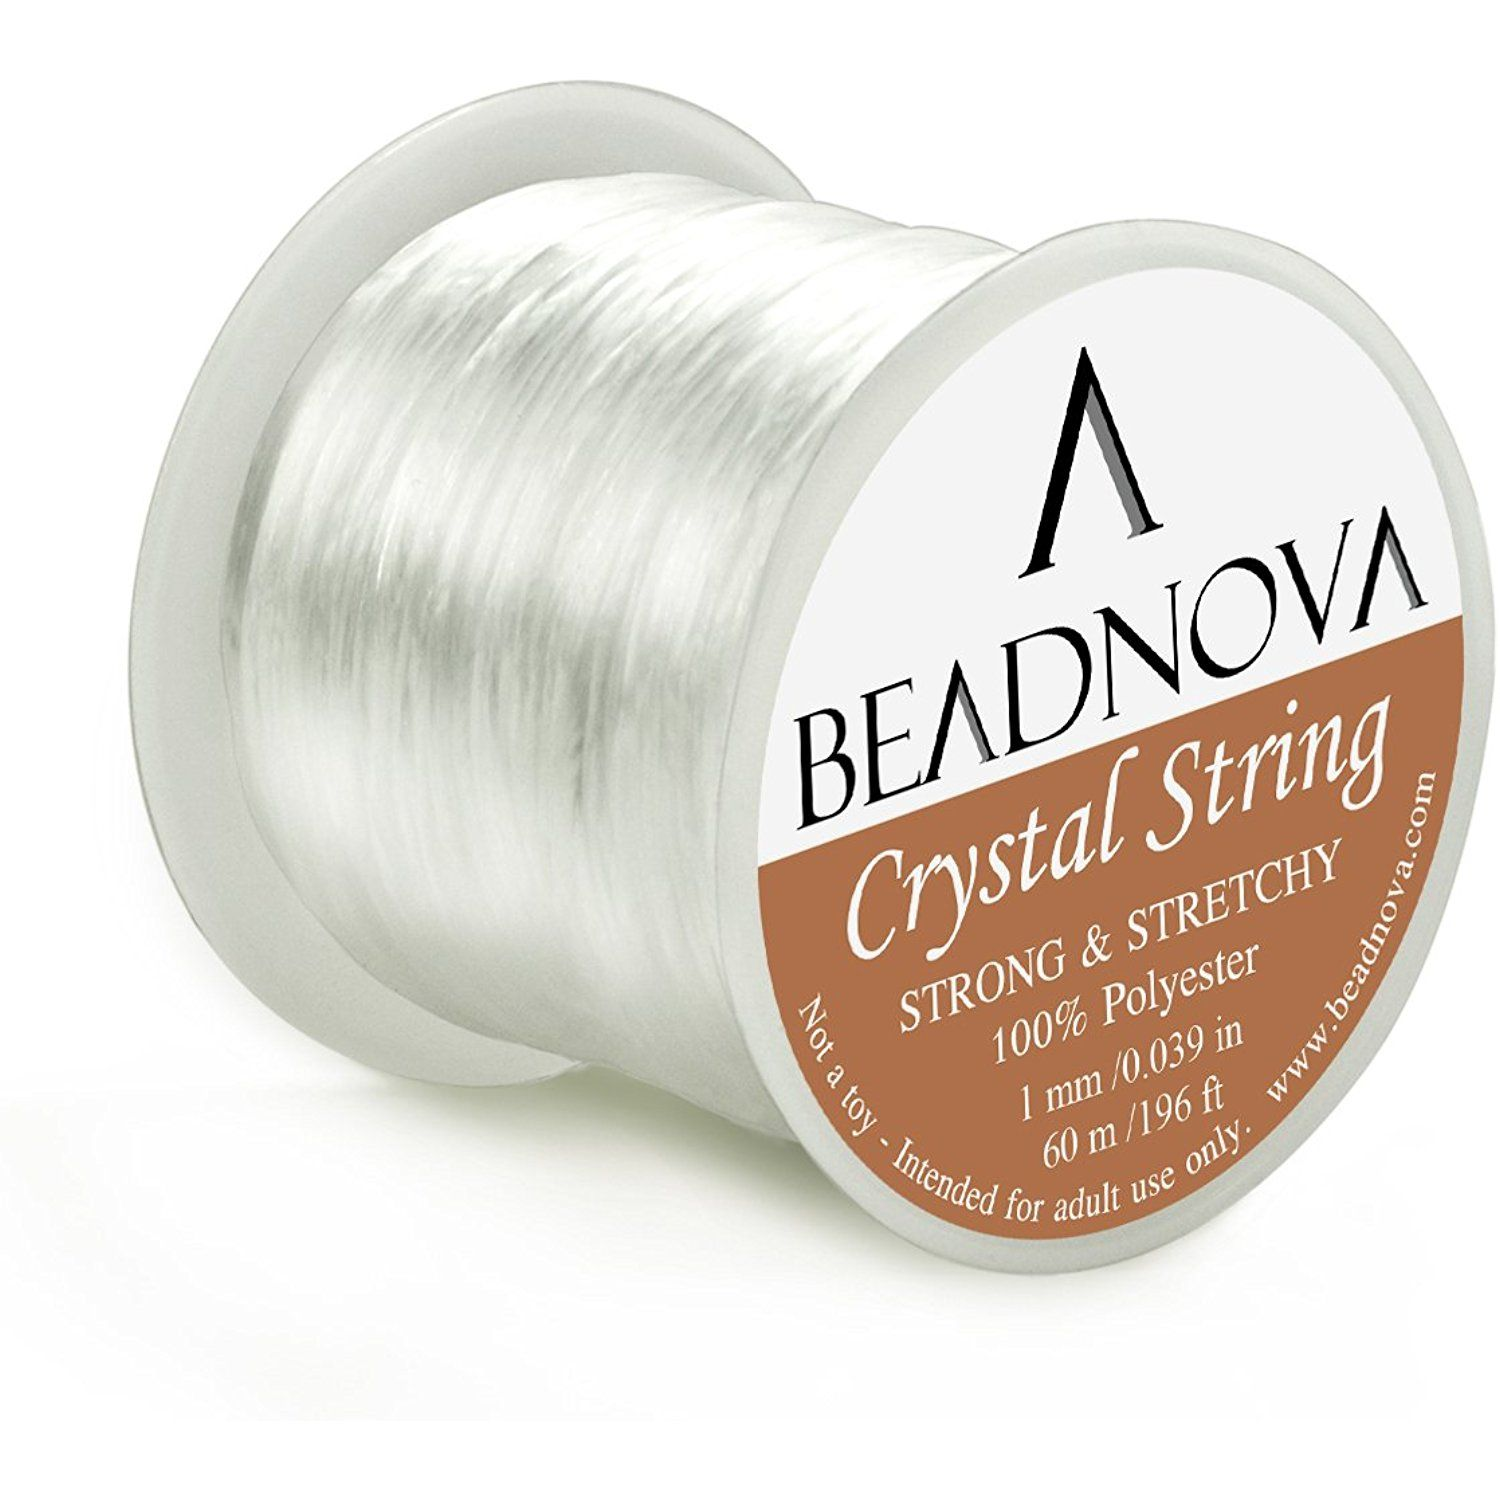 Beadnova mm elastic stretch polyester crystal string cord for